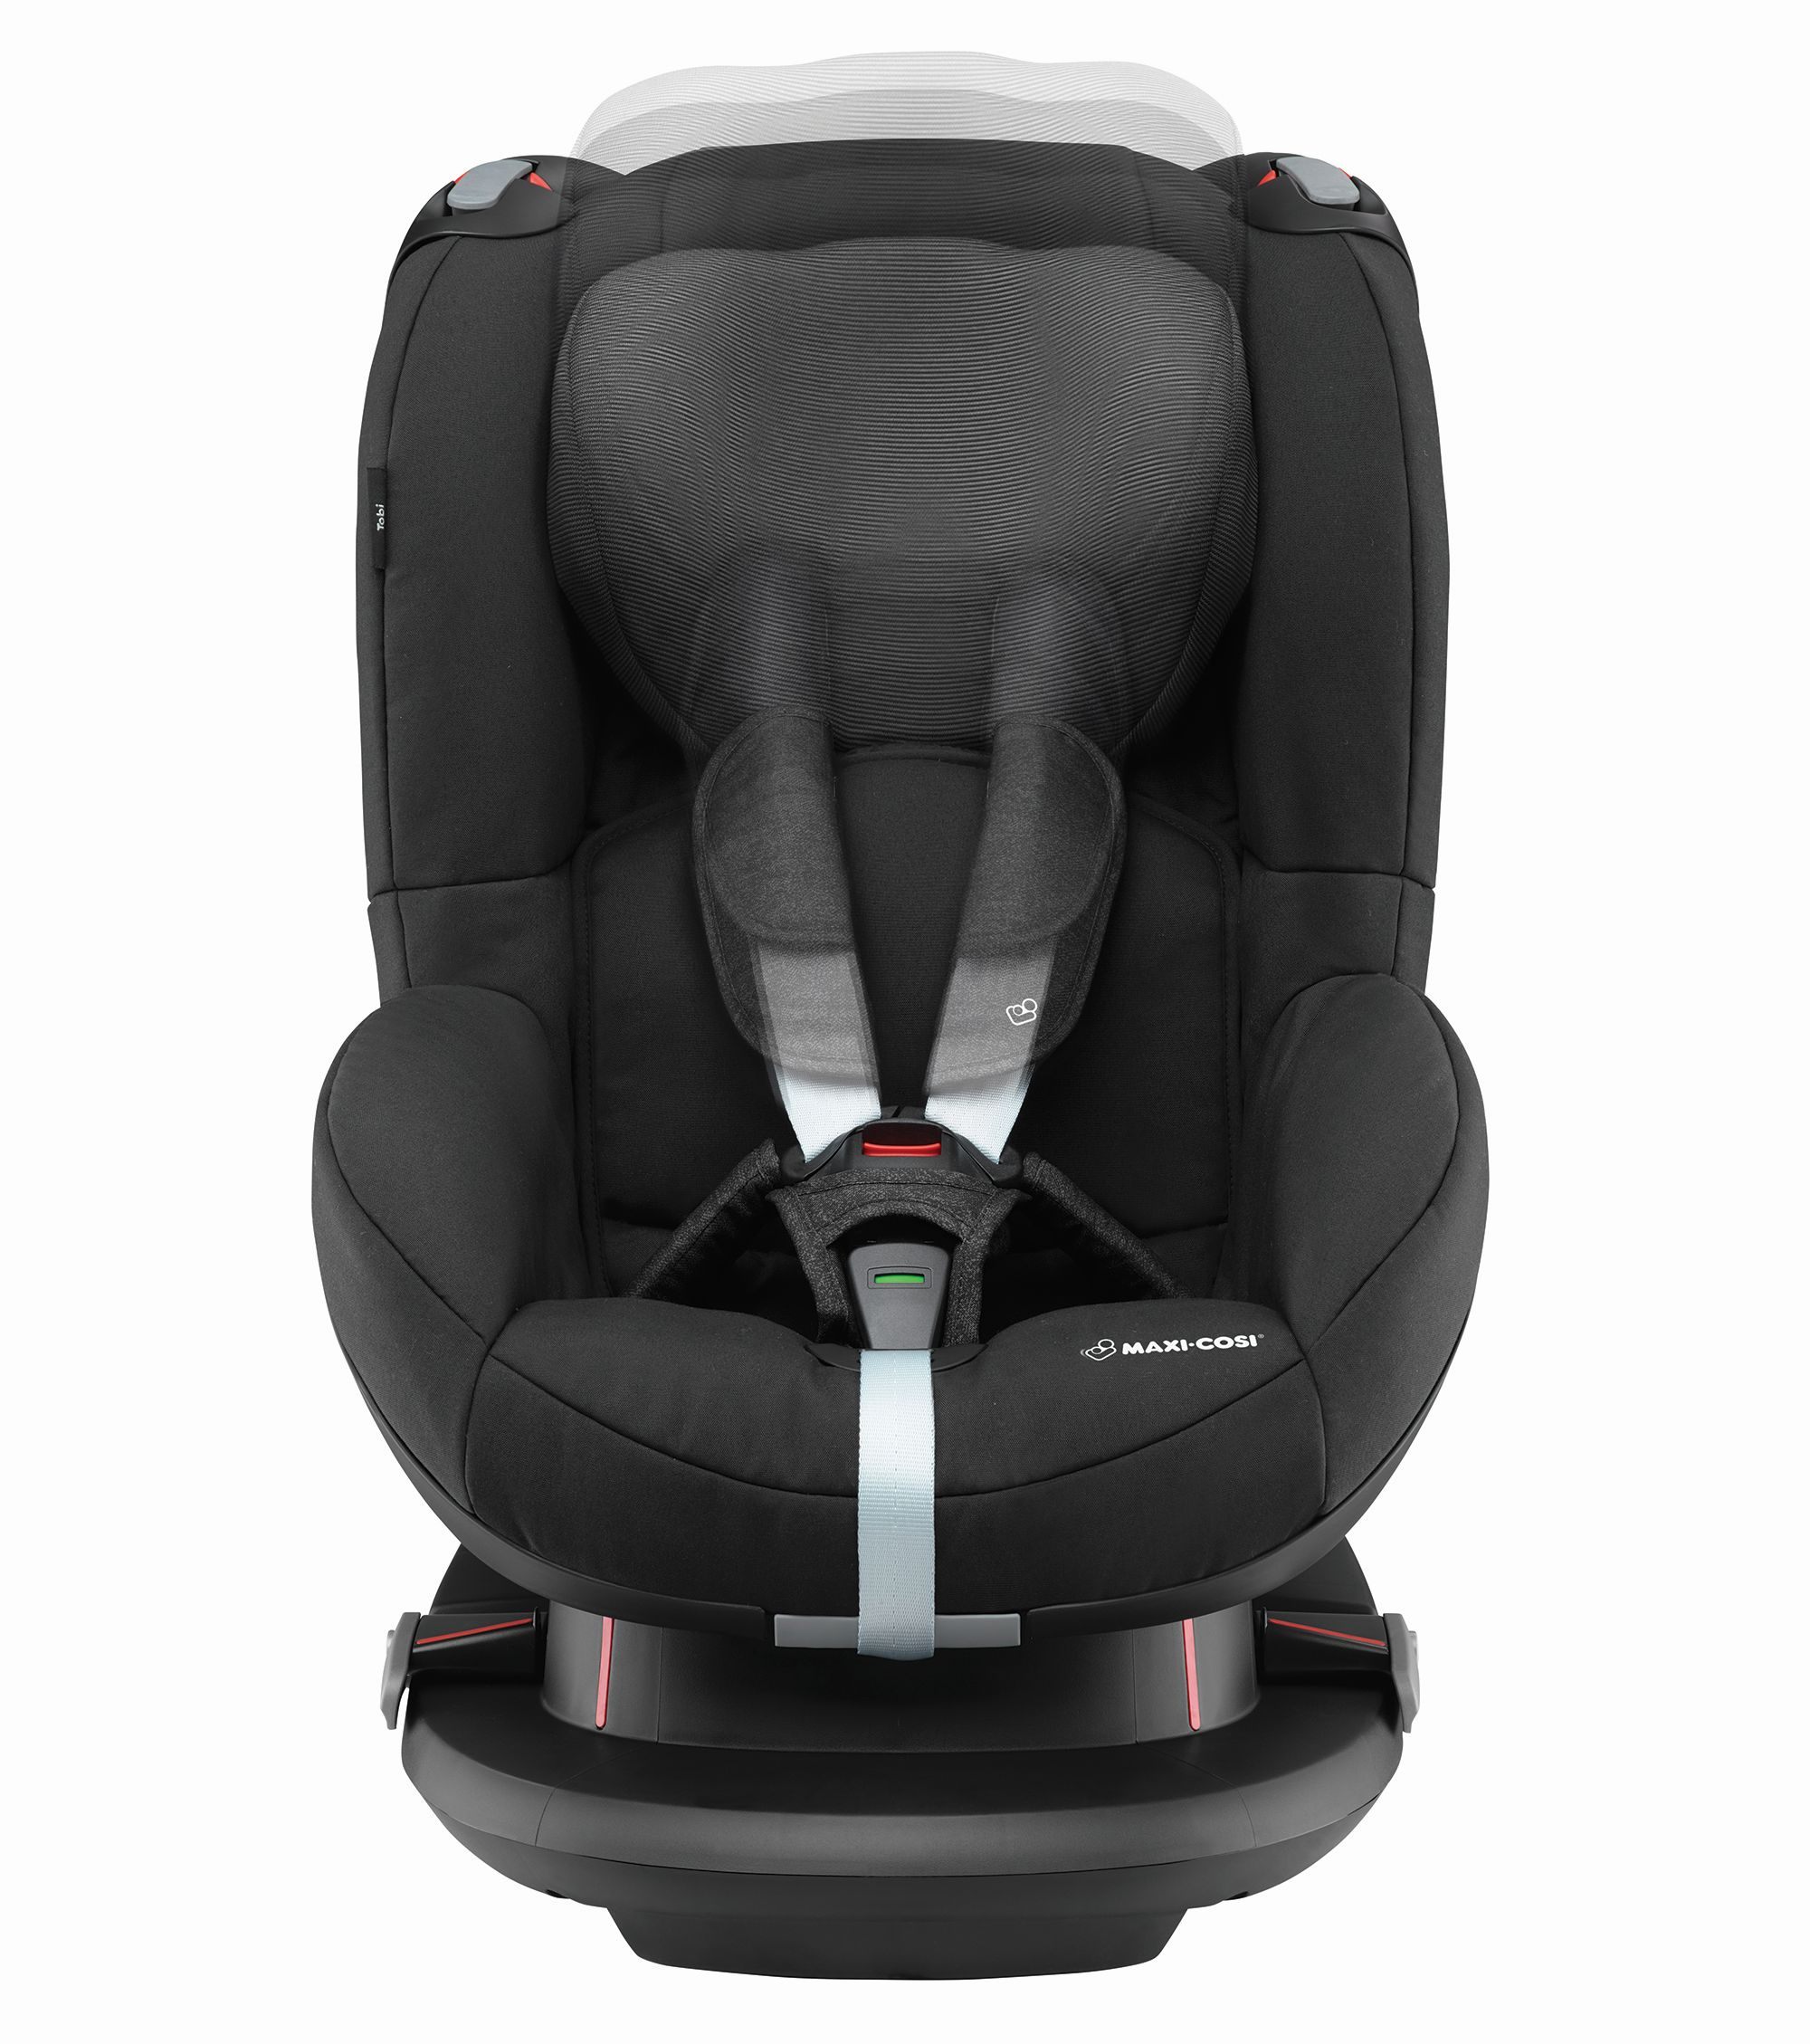 maxi cosi child car seat tobi 2018 nomad black buy at kidsroom car seats. Black Bedroom Furniture Sets. Home Design Ideas